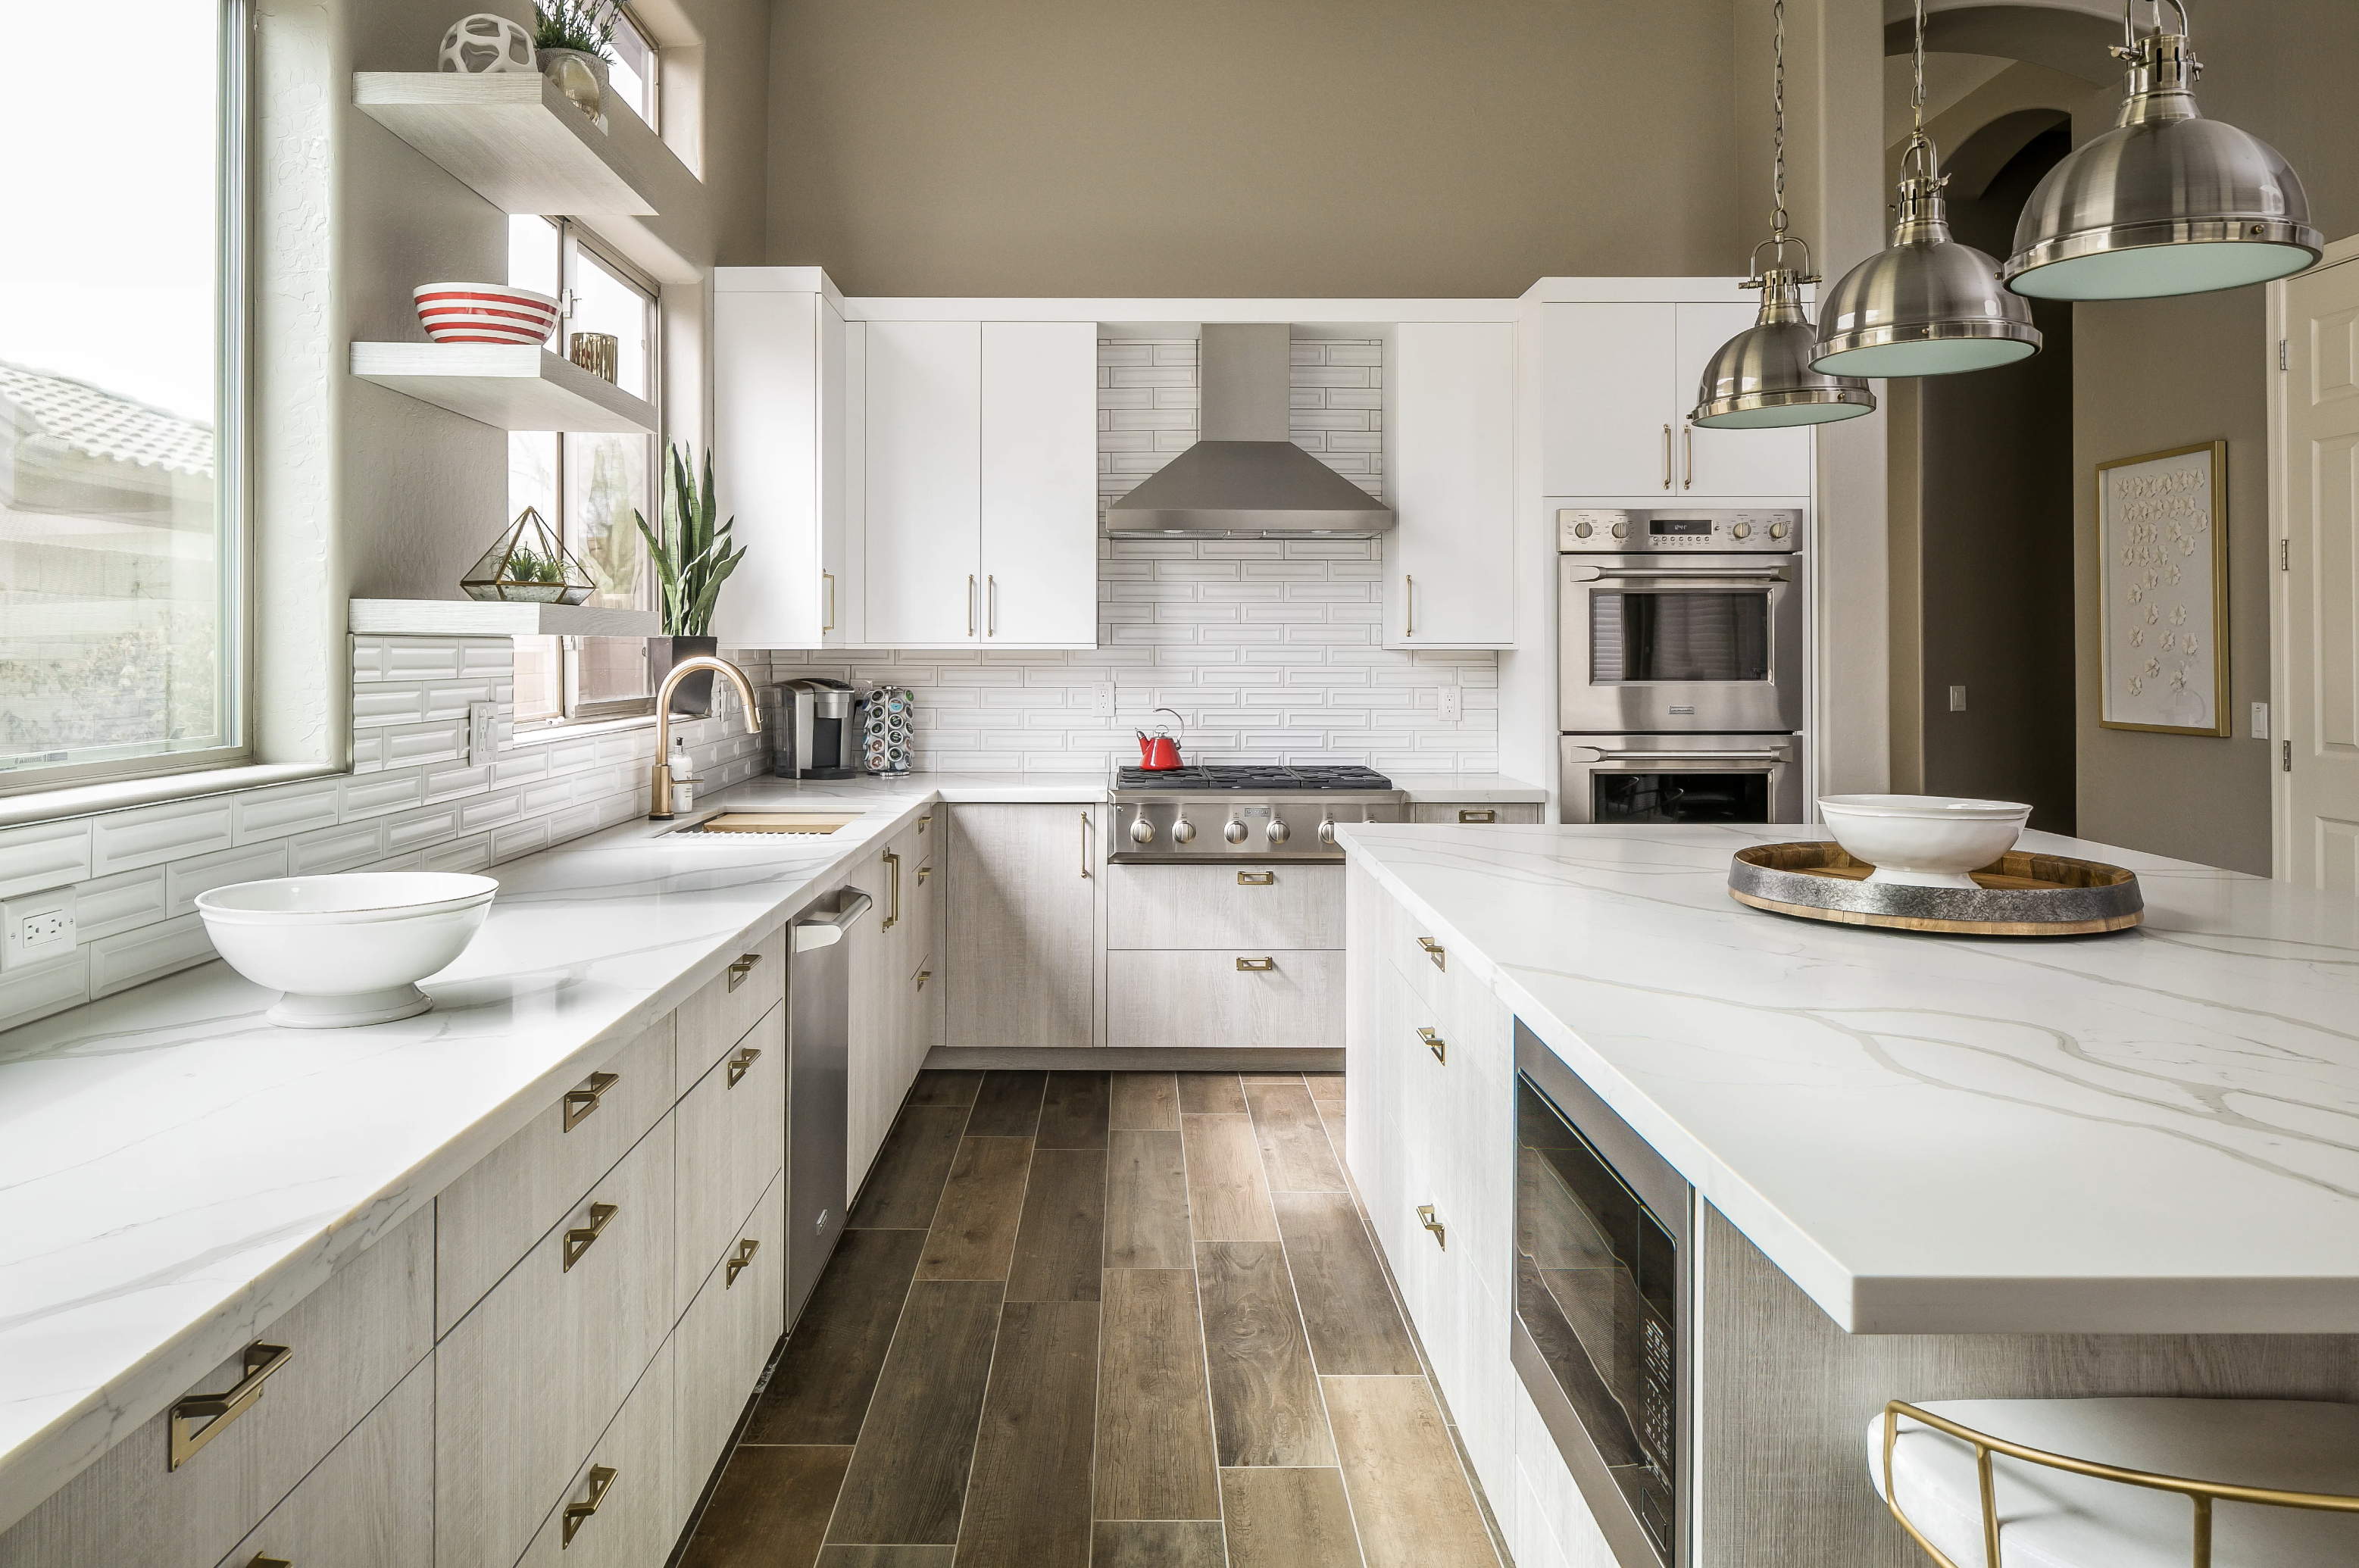 Using Home Design and Remodeling to Give Charm to Your New Build